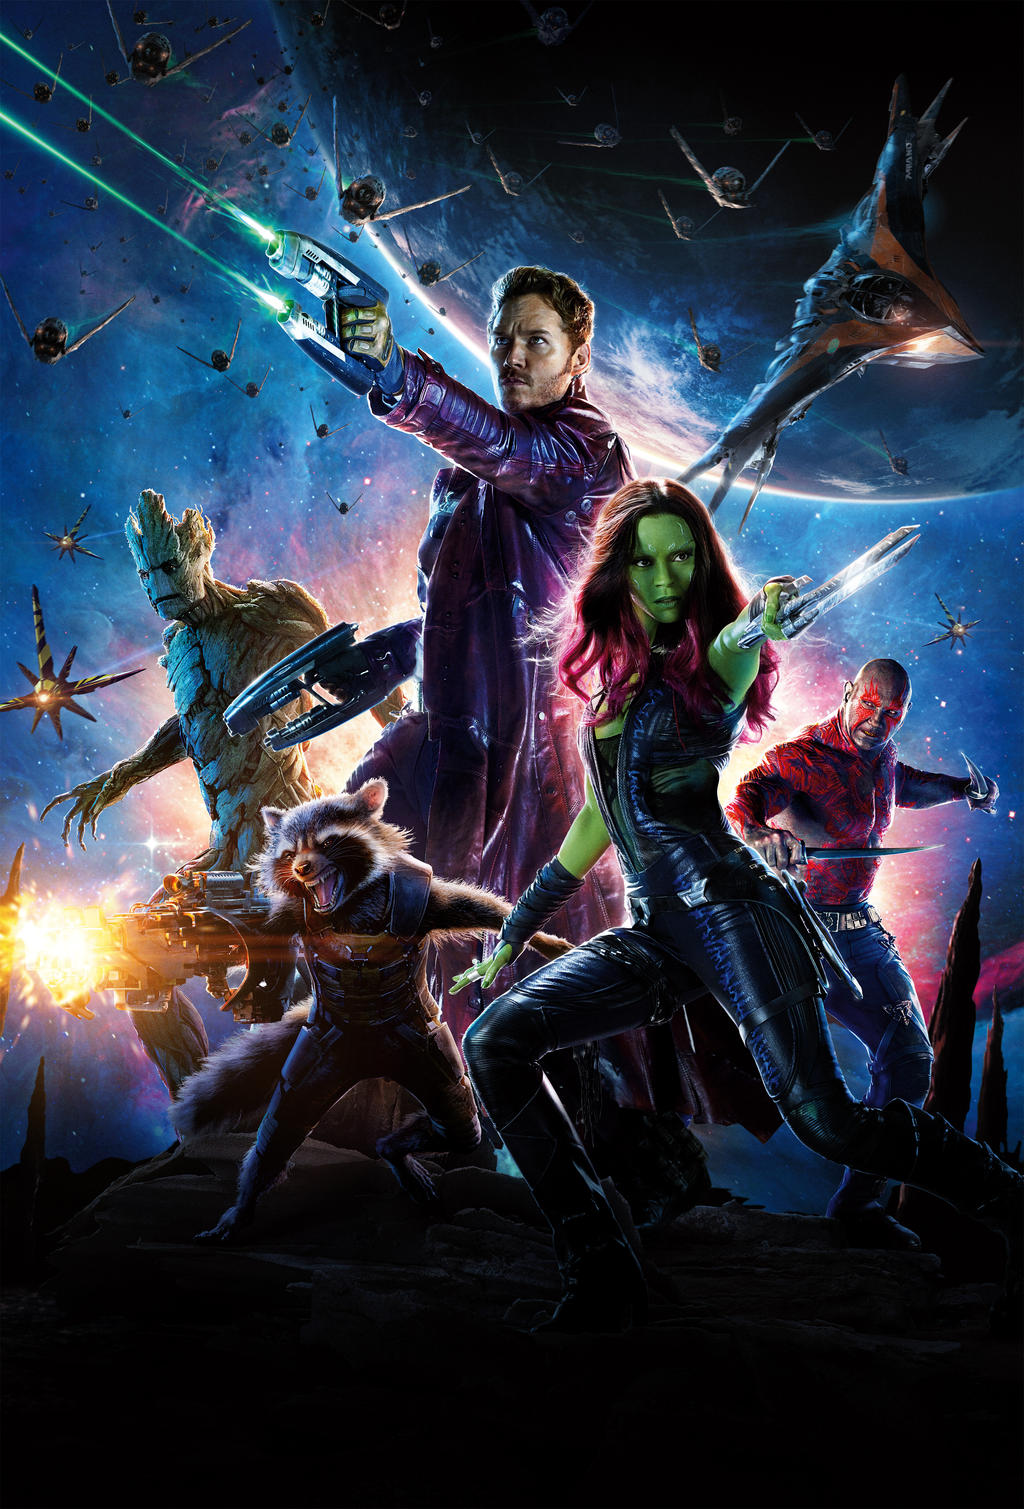 Guardians Of The Galaxy Hd Wallpaper By Alphafuryofthenight On